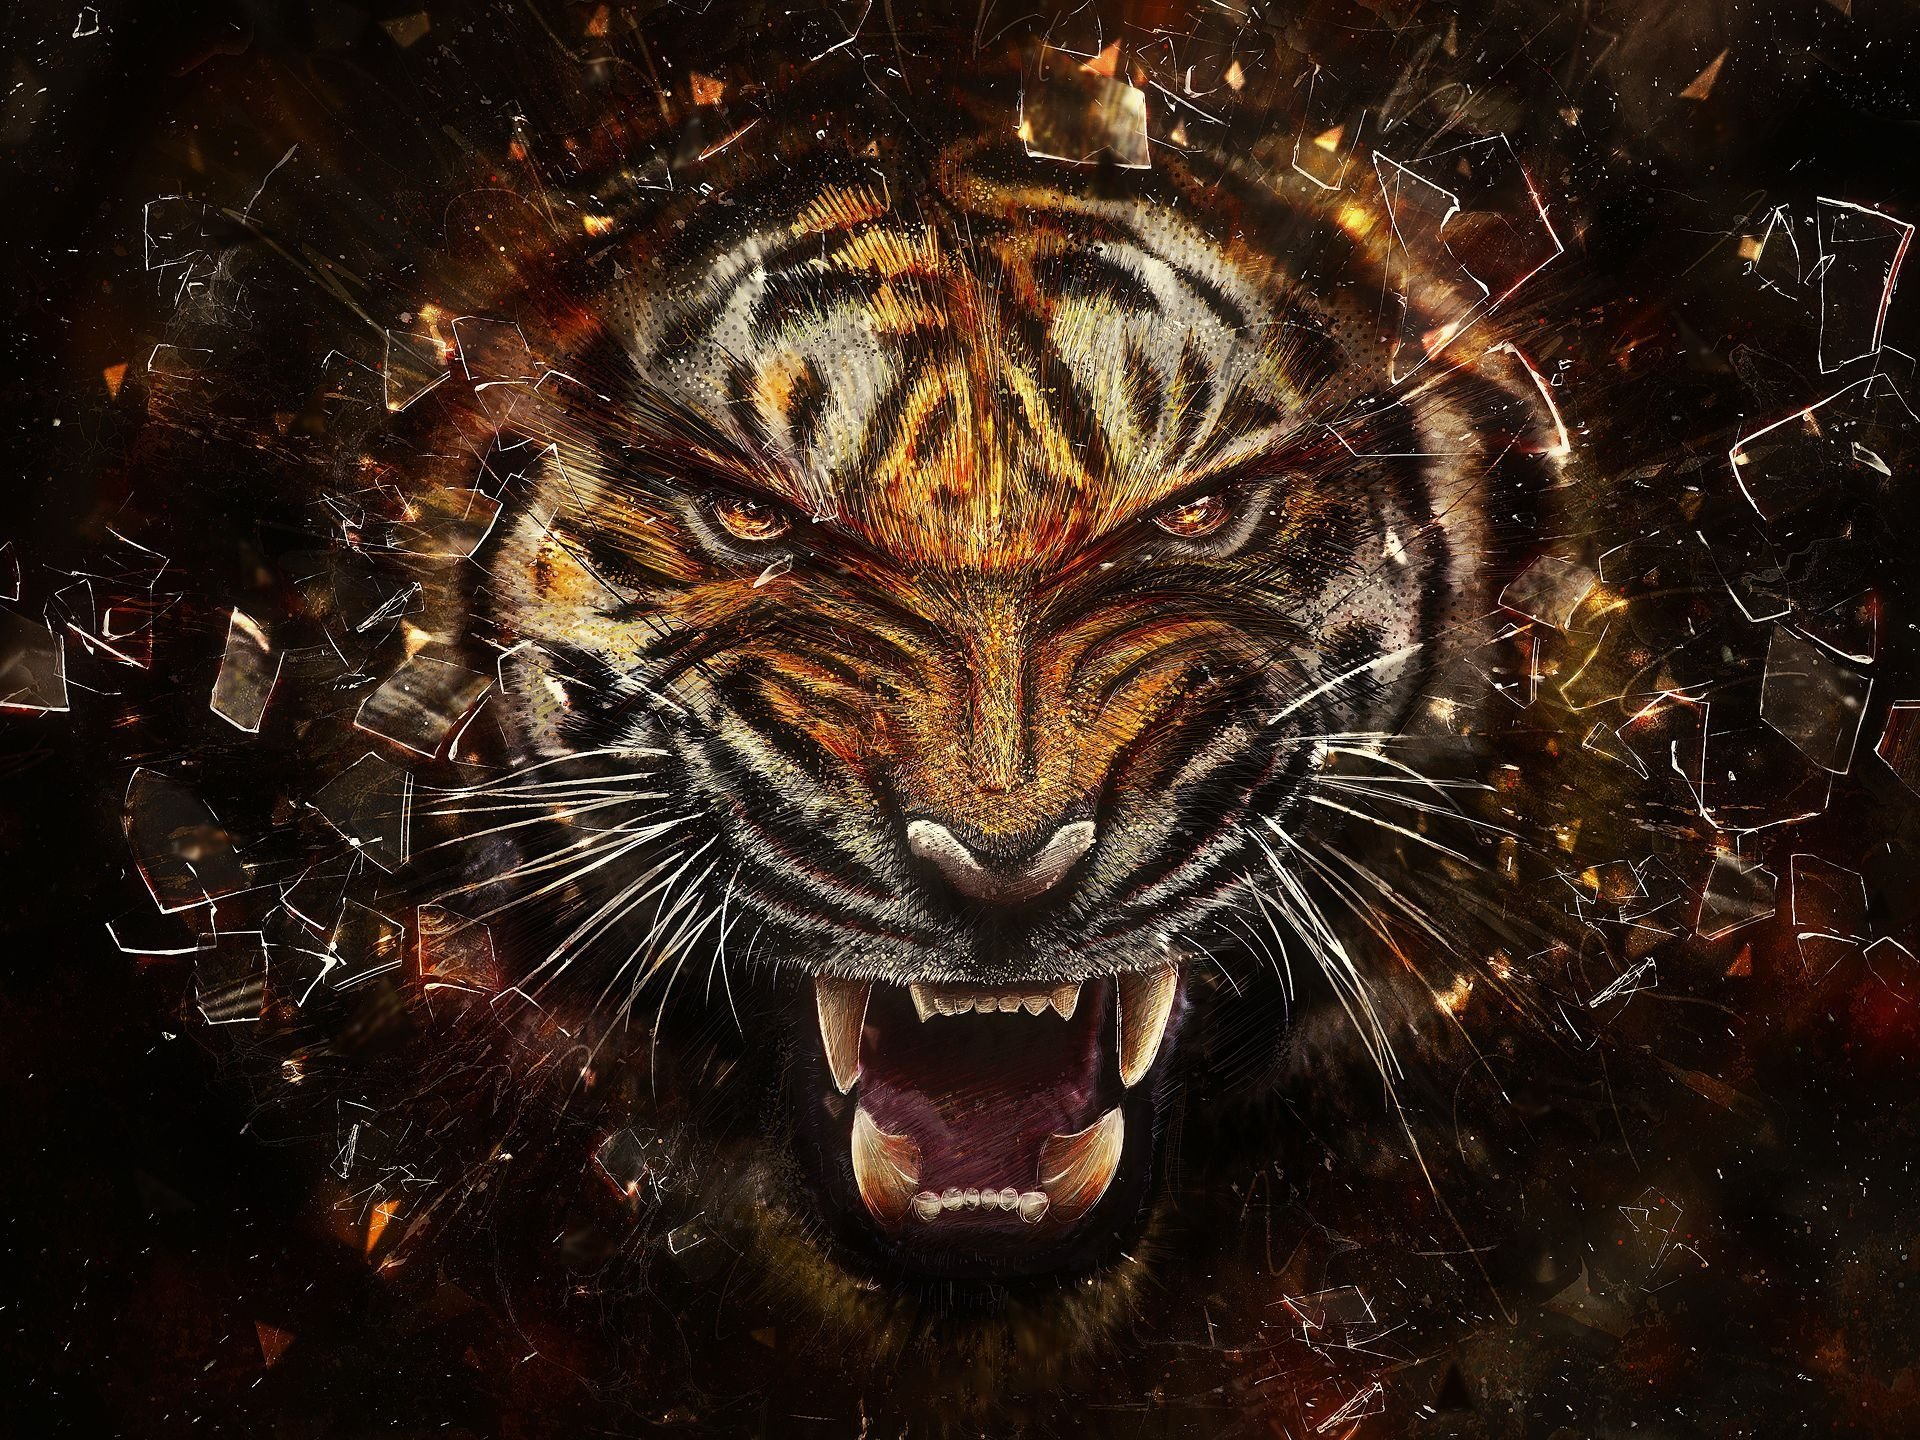 tiger hd wallpaper background image 1920x1440 id 472563